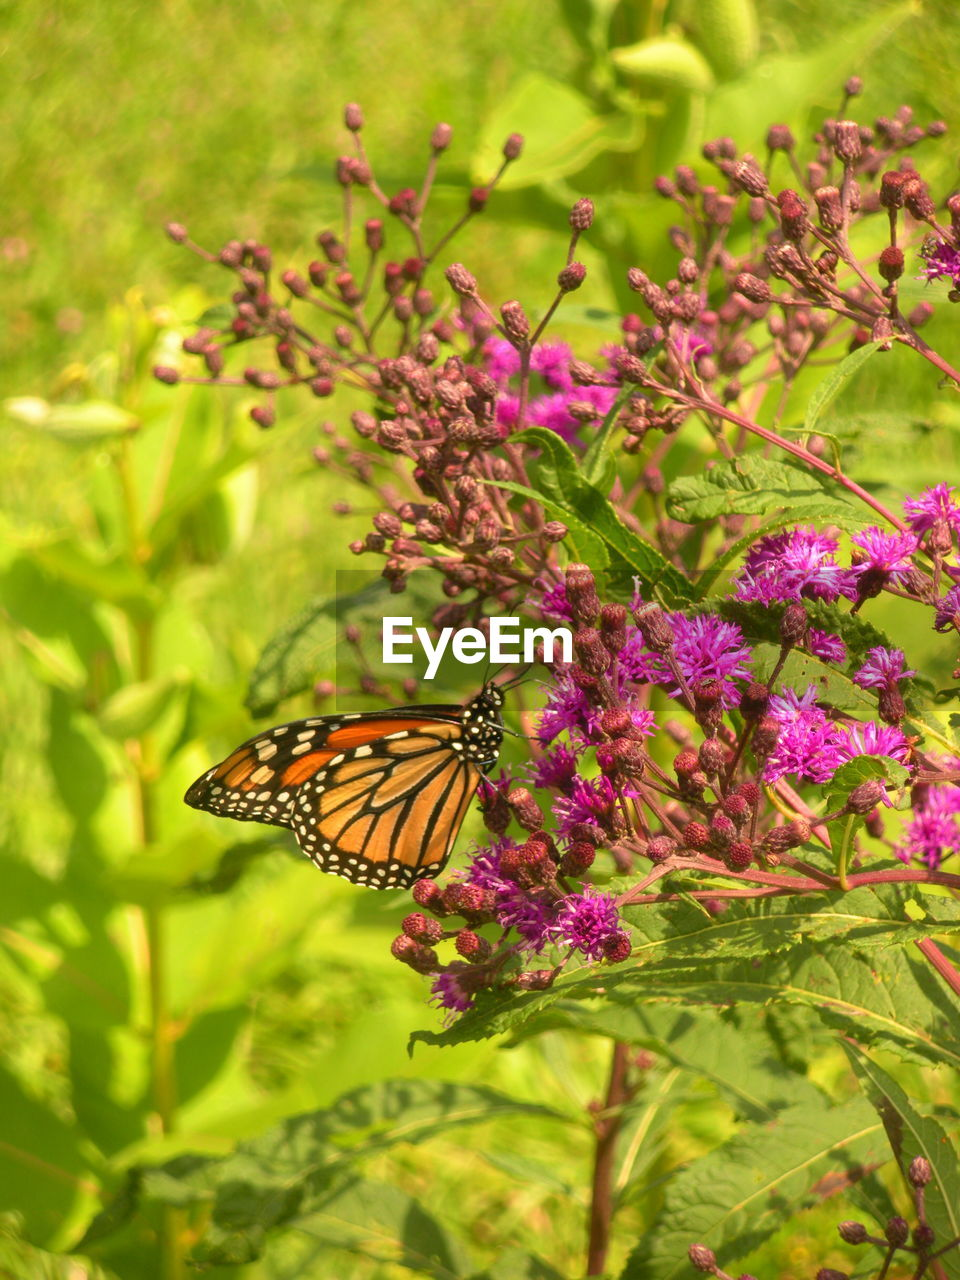 flower, flowering plant, animal wing, butterfly - insect, beauty in nature, animal themes, one animal, animal, plant, invertebrate, insect, animal wildlife, animals in the wild, growth, freshness, fragility, nature, vulnerability, close-up, pollination, flower head, no people, purple, outdoors, butterfly